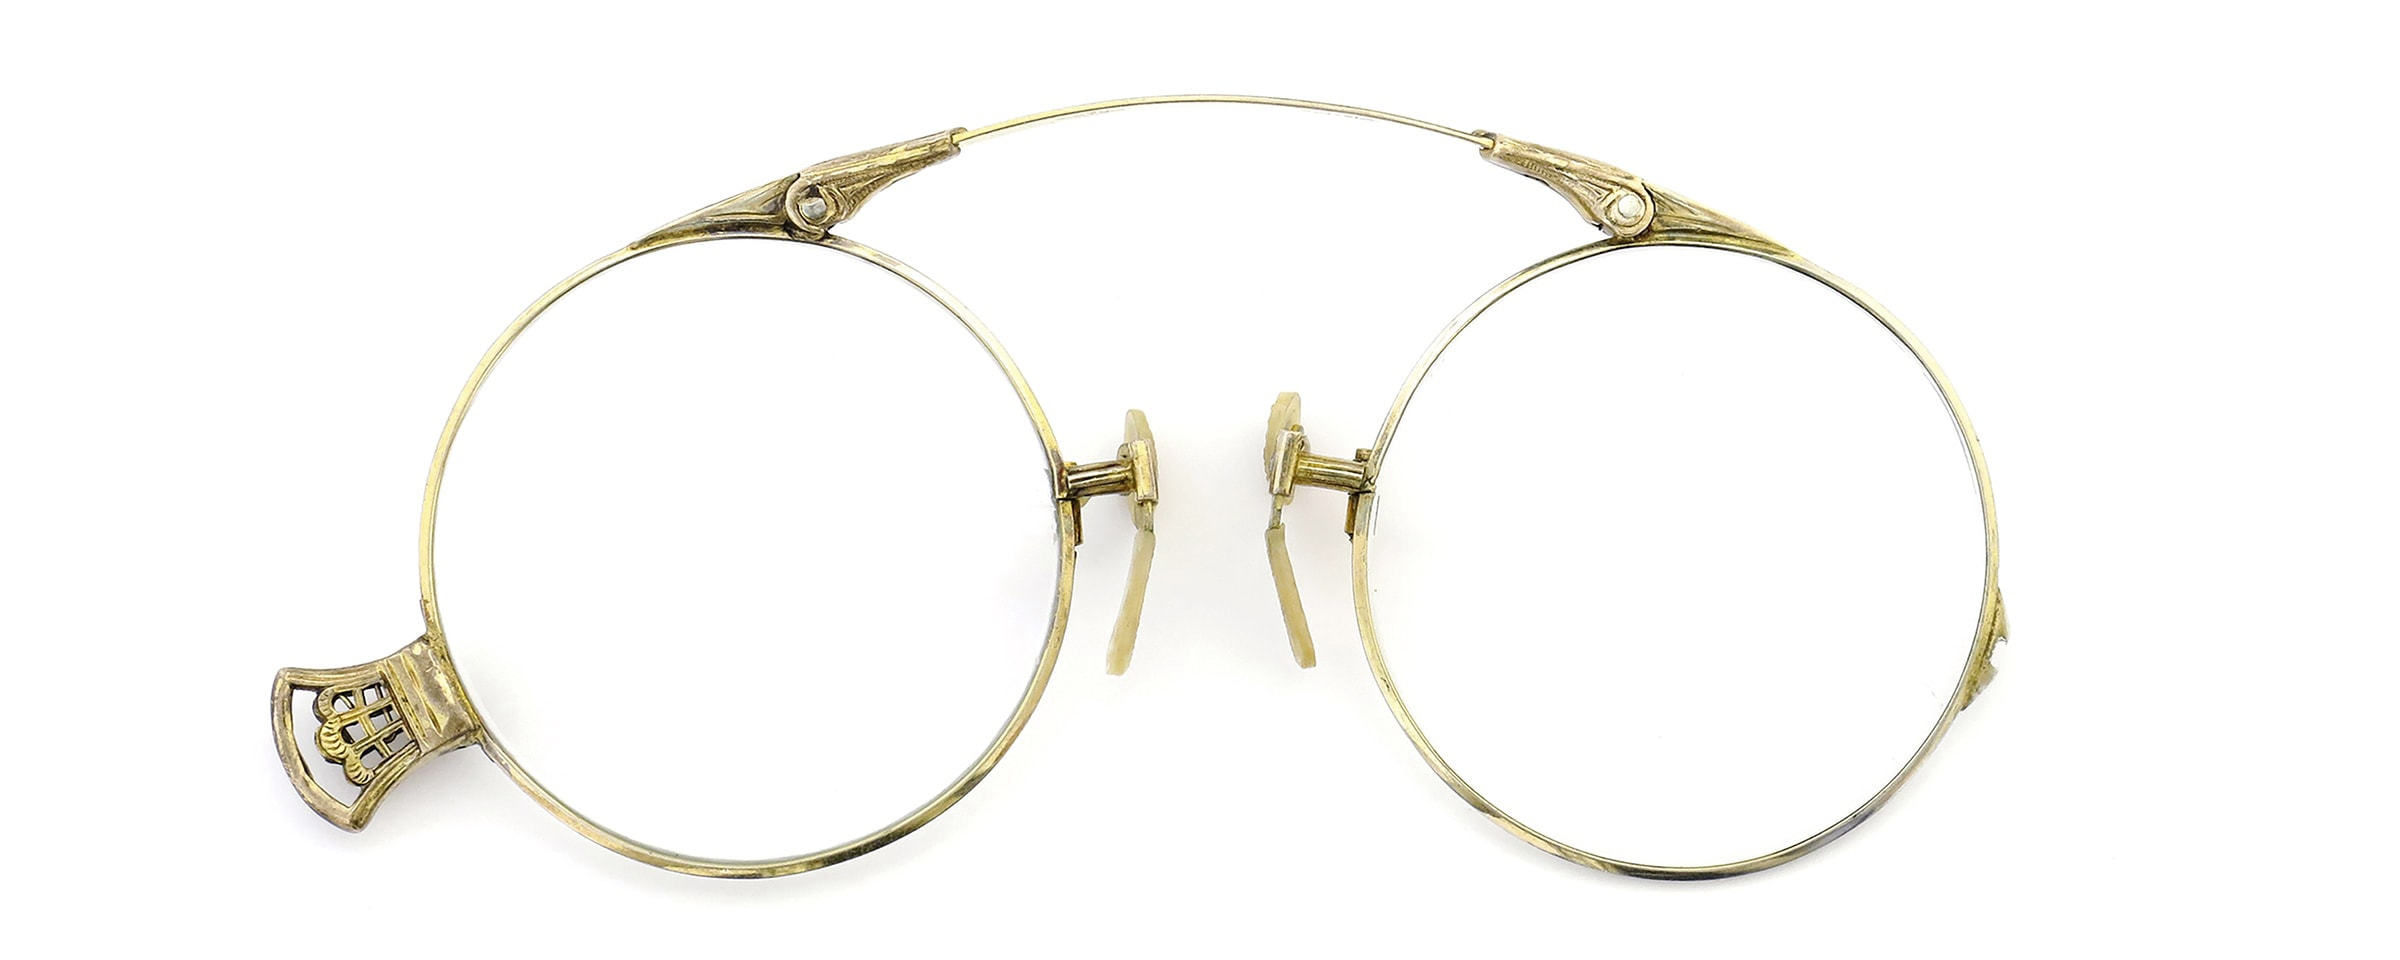 Lesca Speciality collection Pince Nez [v2] Folding Round